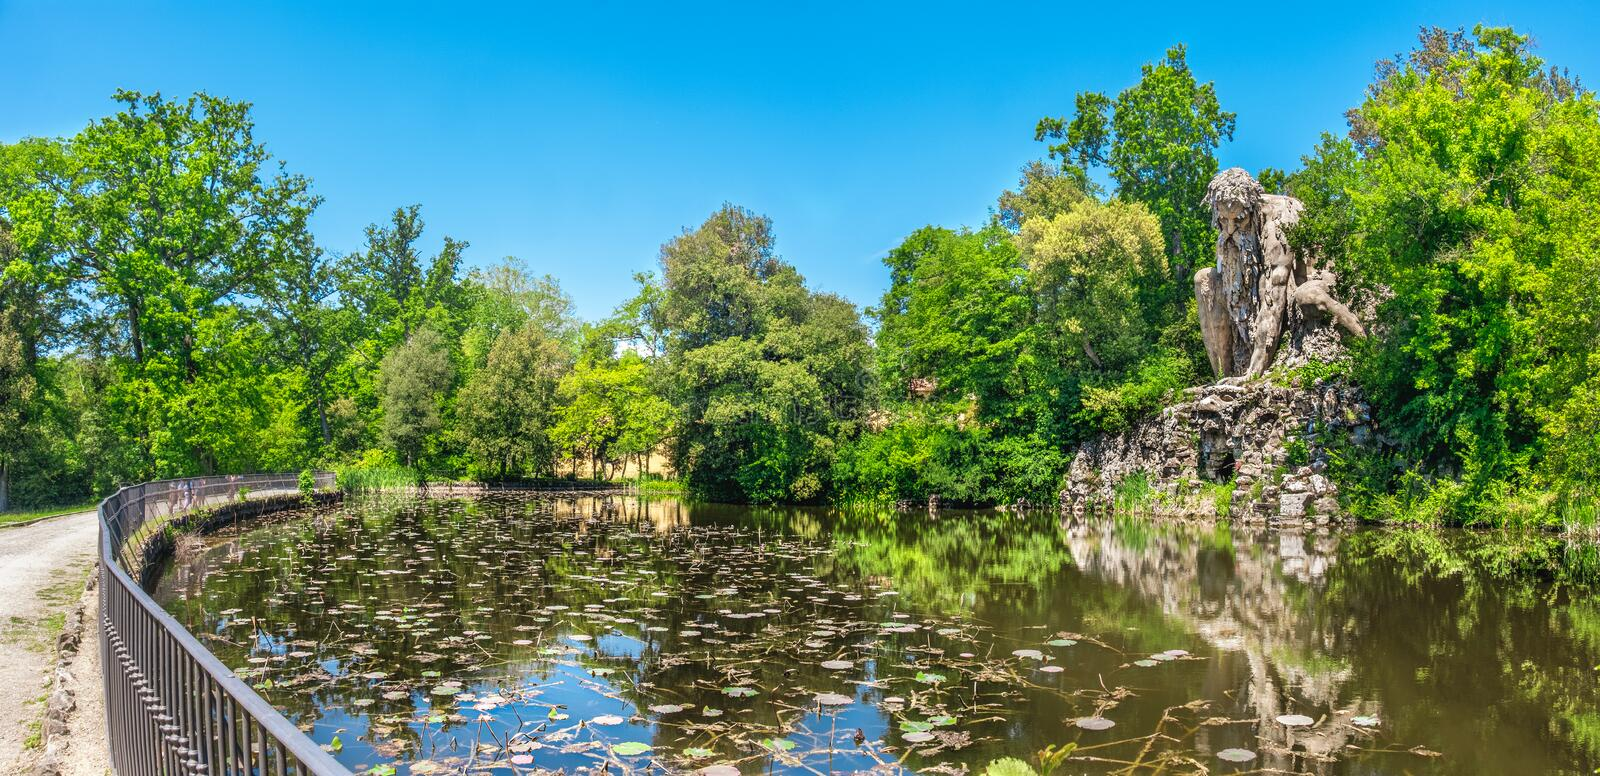 The majestic big statue of Colosso dell Appennino giant statue and pond in public gardens of Pratolino near Florence in stock images